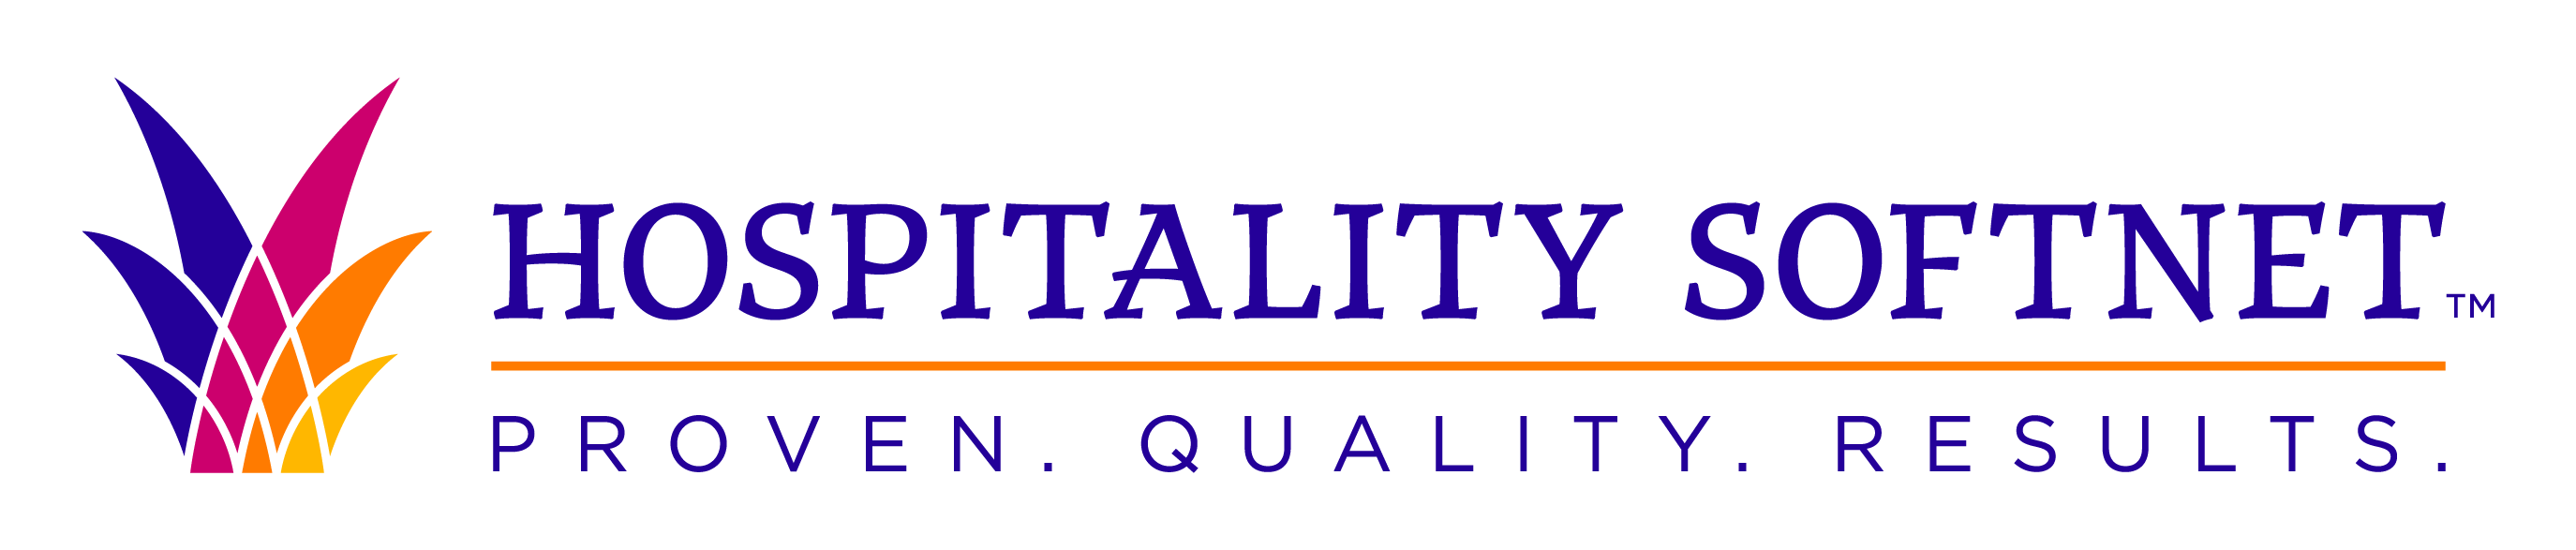 Hospitality Softnet. Proven. Quality. Results.